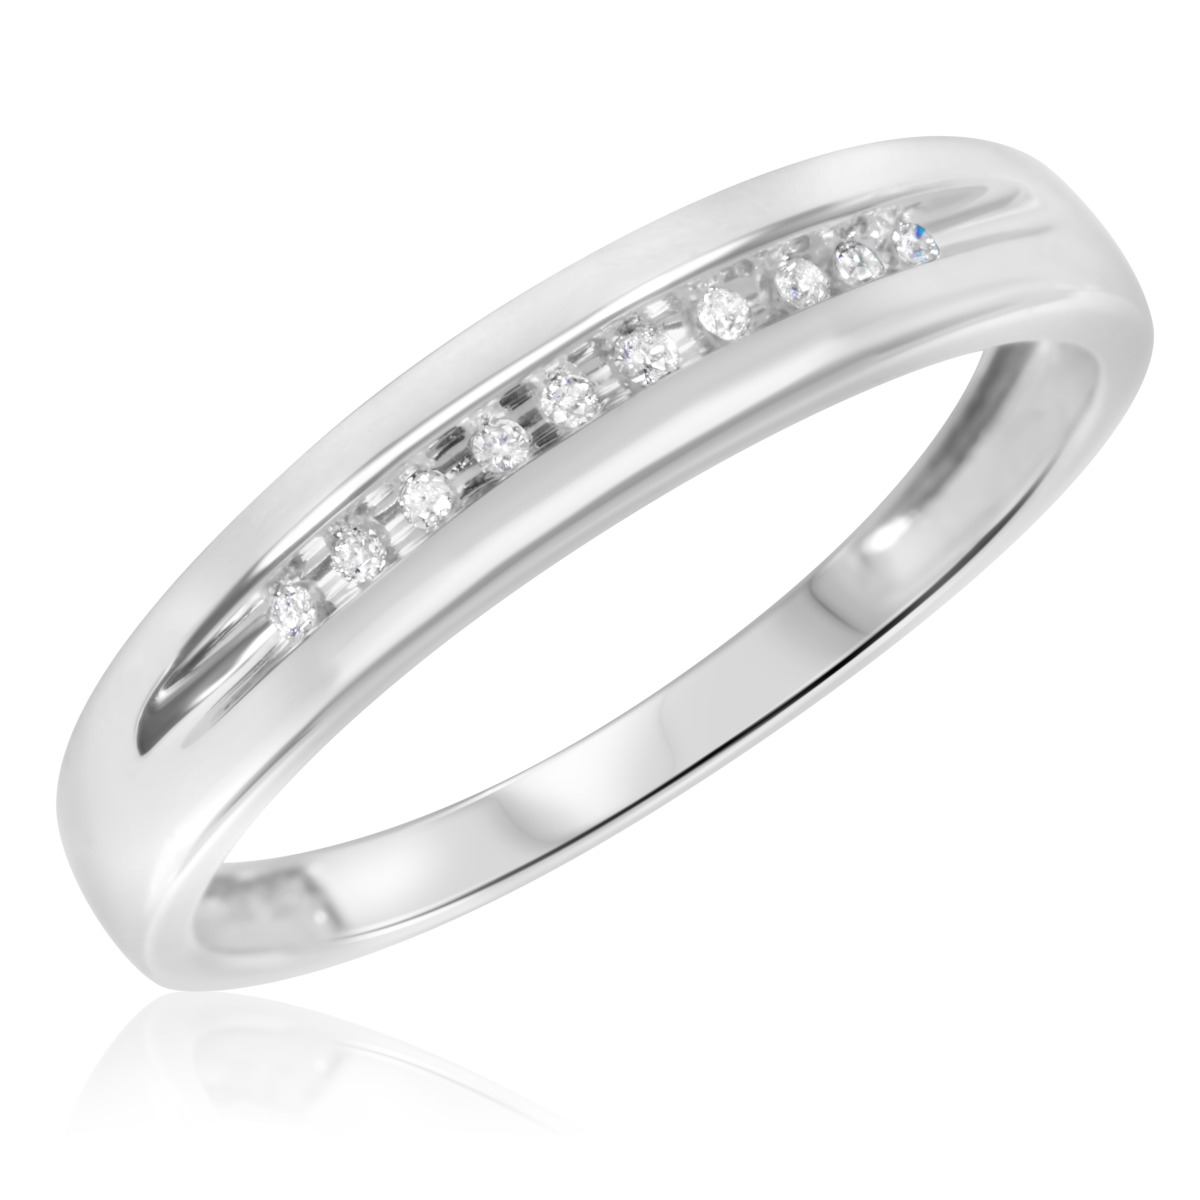 1/15 CT. T.W. Diamond Men's Wedding Band 14K White Gold